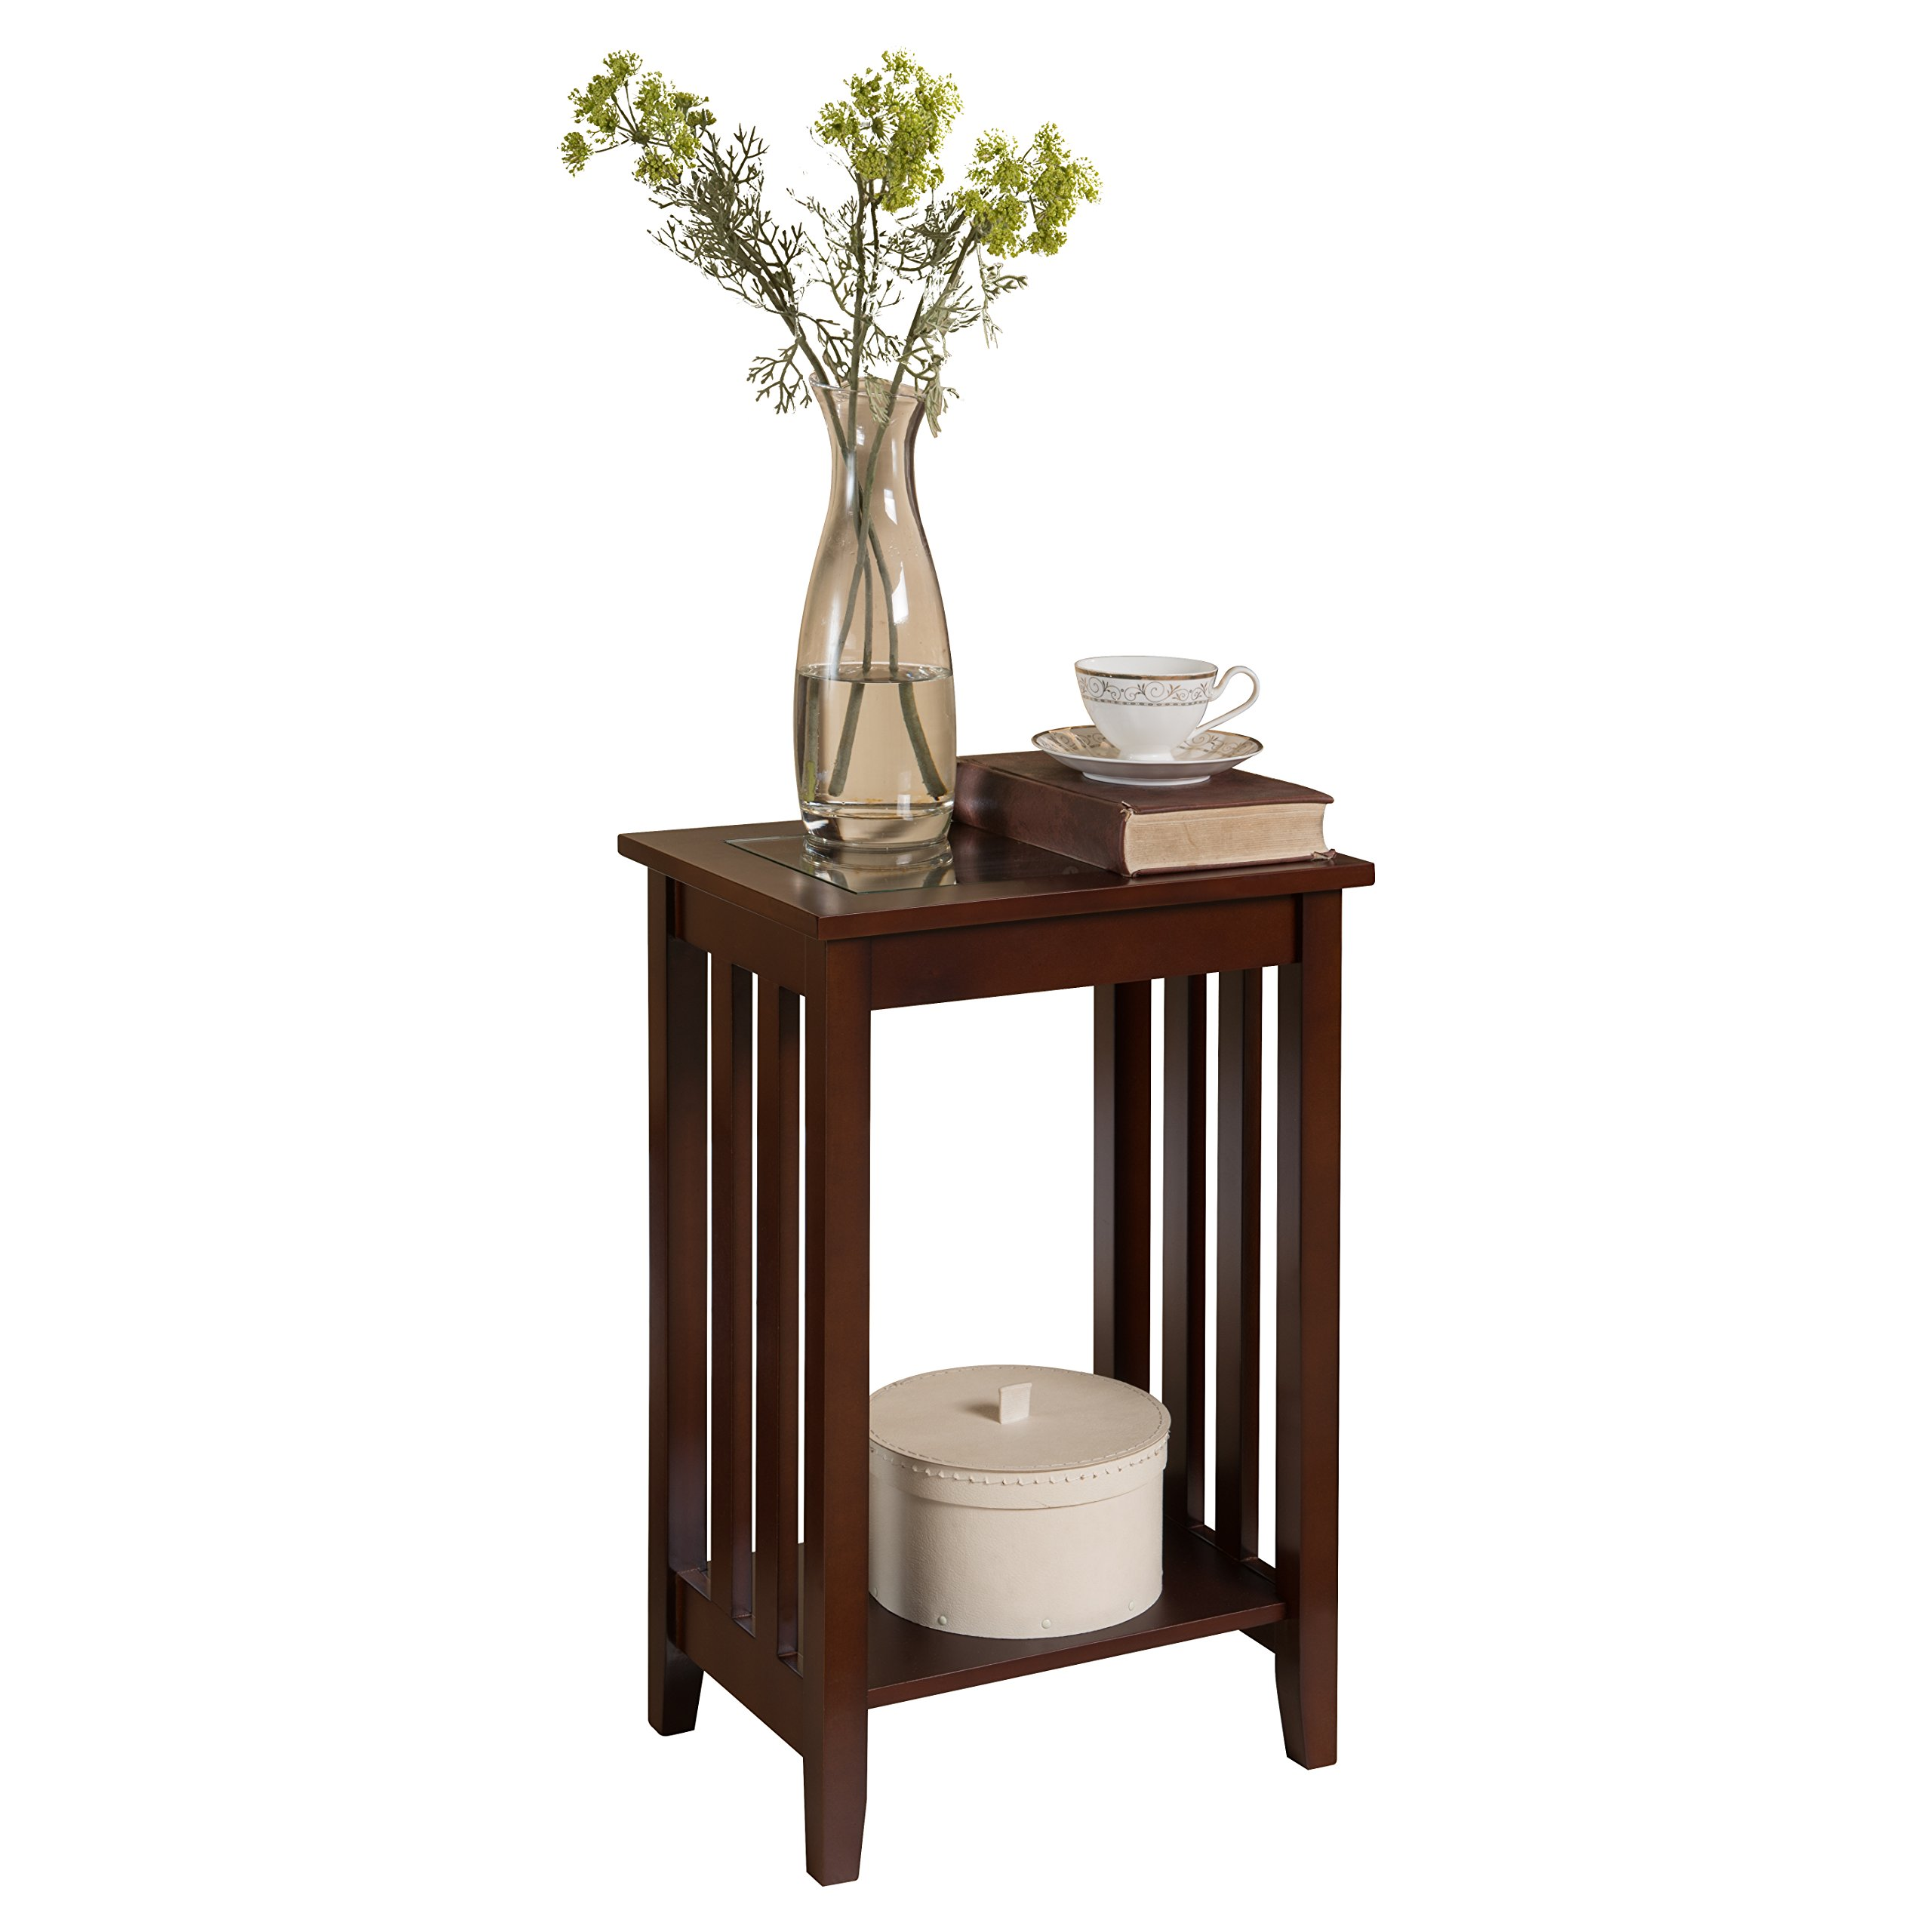 Pilaster Designs - Walnut Finish Wood Chair Side Accent End Table, Plant Stand